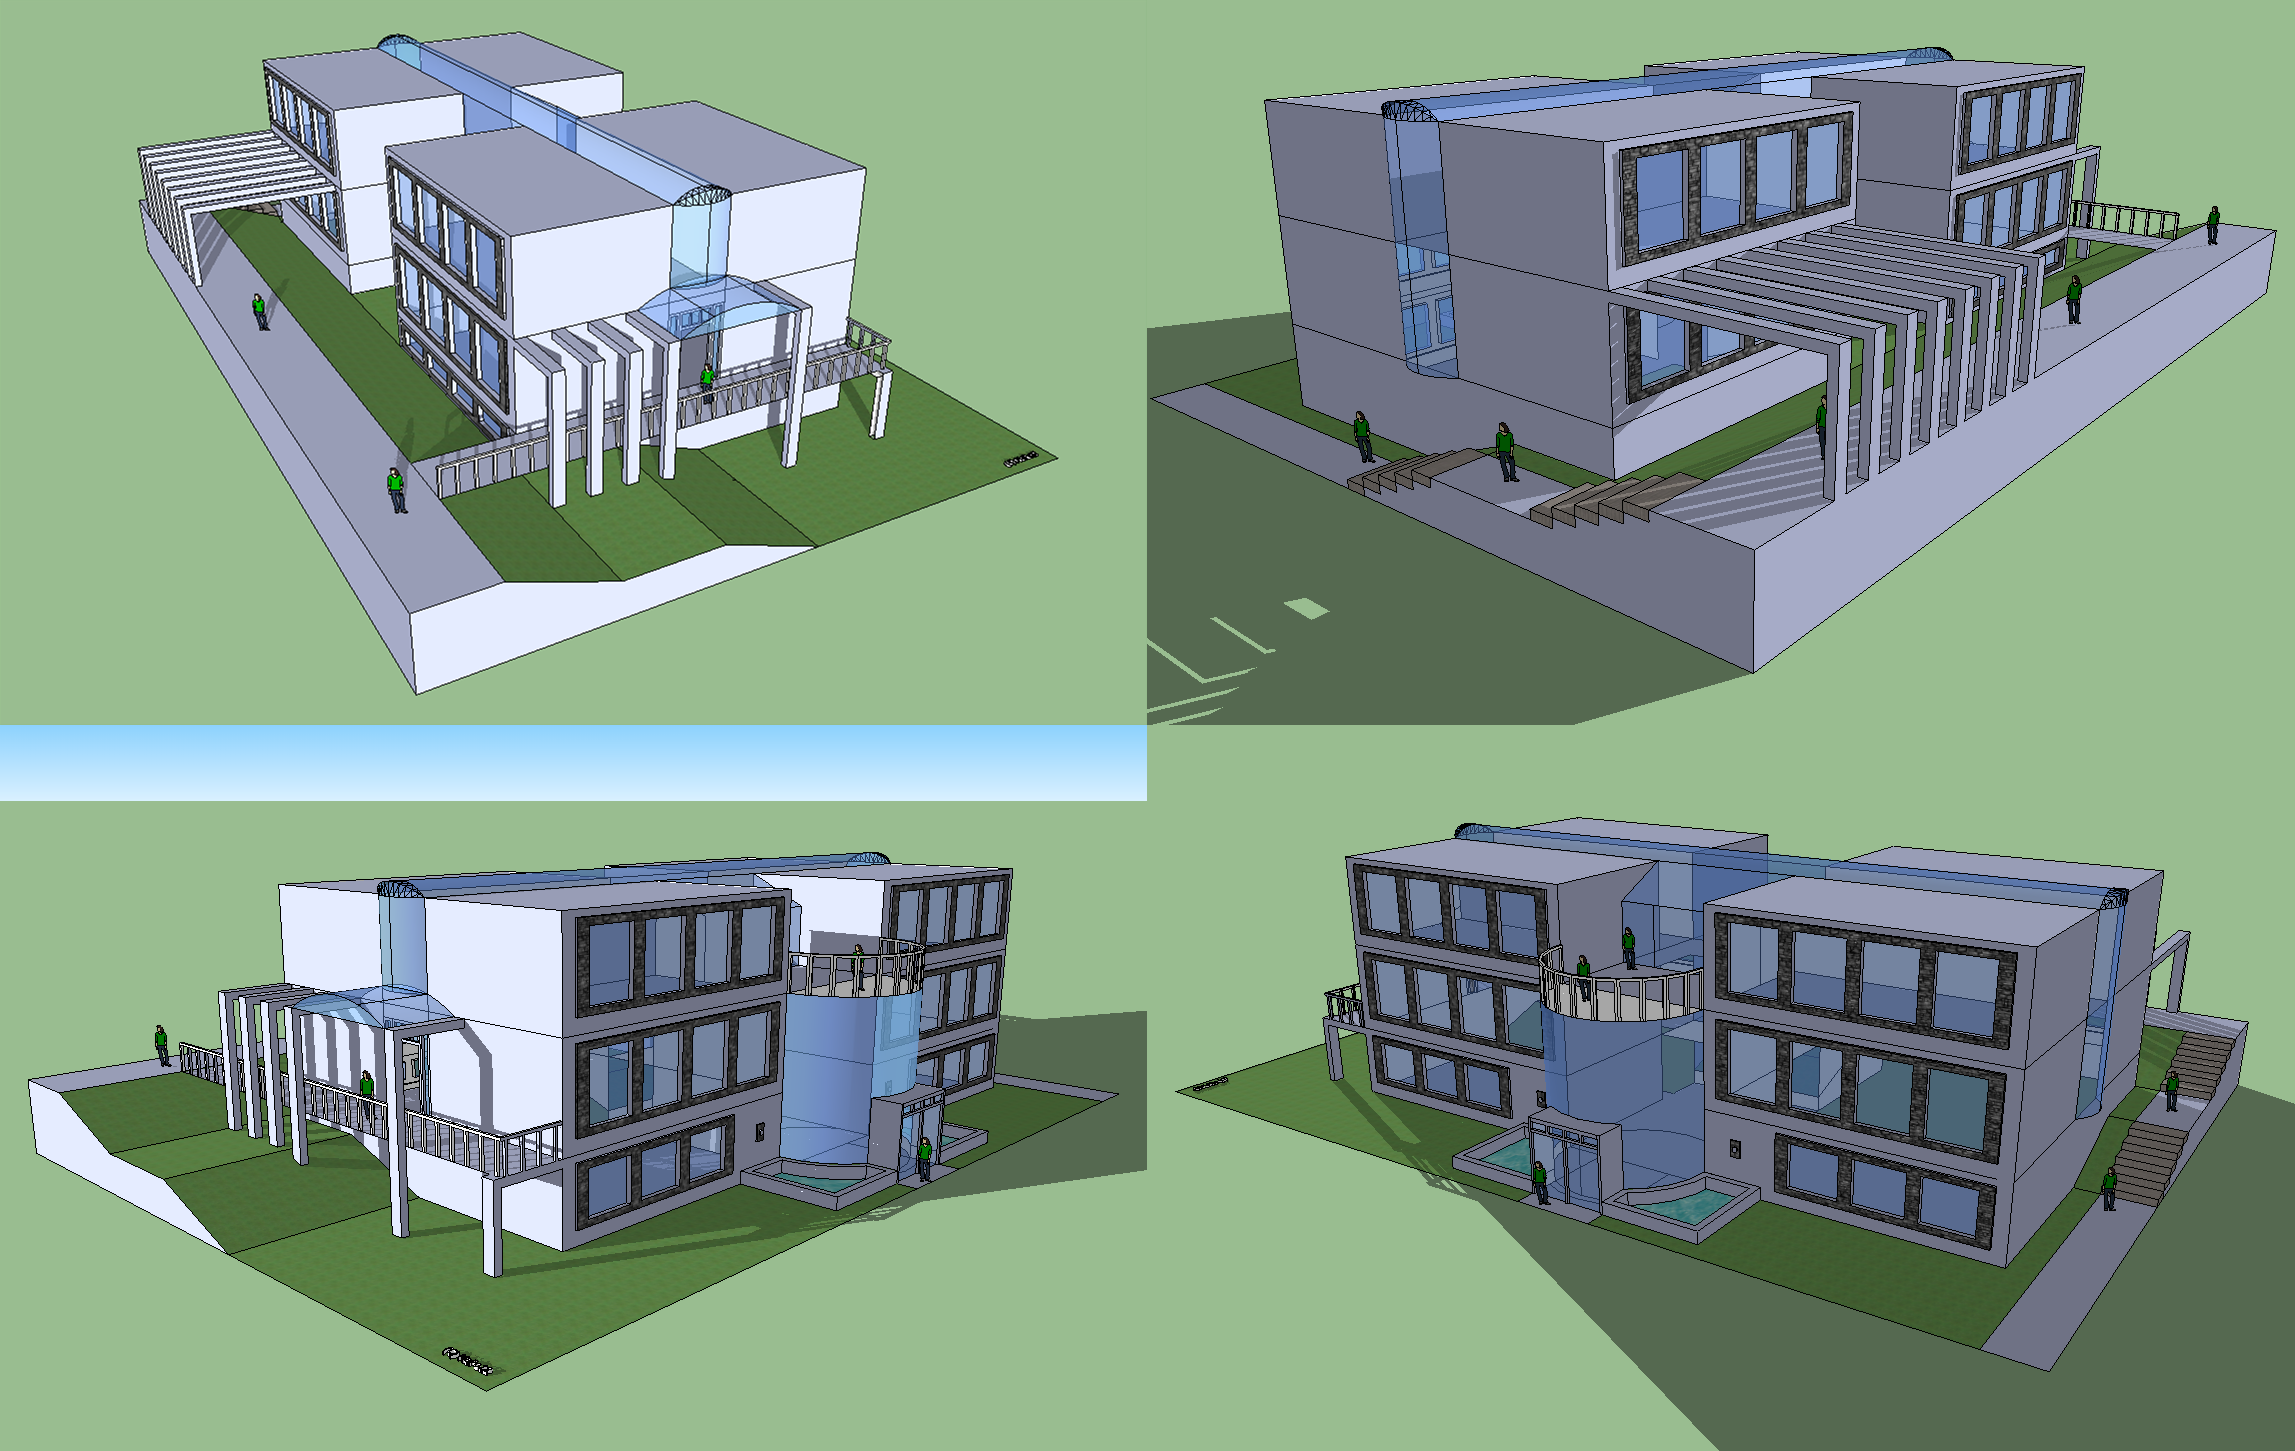 School building by mapo12 on deviantart for House structure design ideas